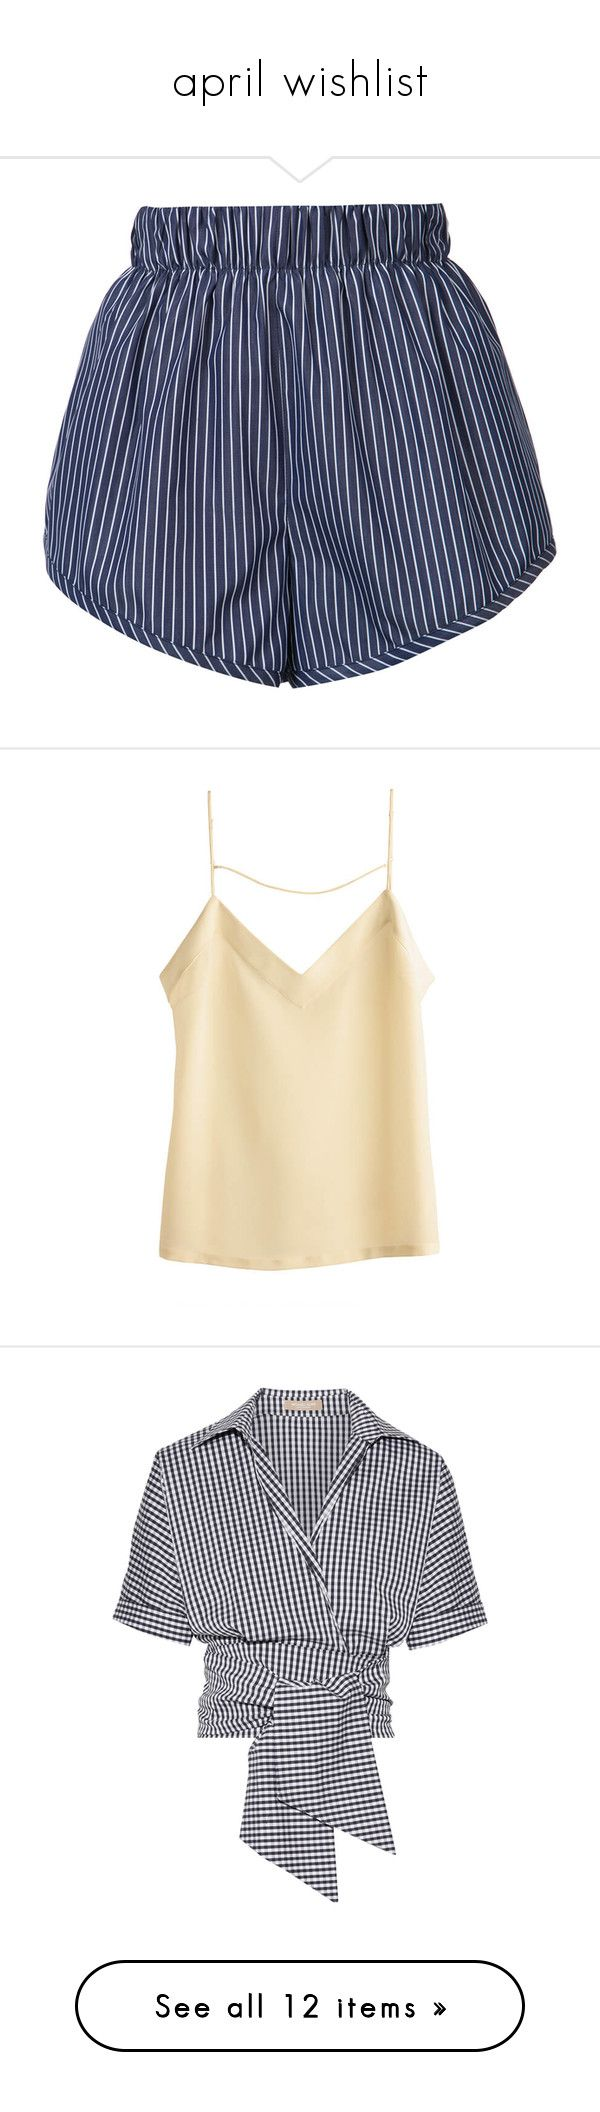 """""""april wishlist"""" by violevlasic ❤ liked on Polyvore featuring shorts, blue, stripe shorts, blue shorts, stretch waist shorts, elastic waistband shorts, stella mccartney, tops, silk camisole and beige cami"""